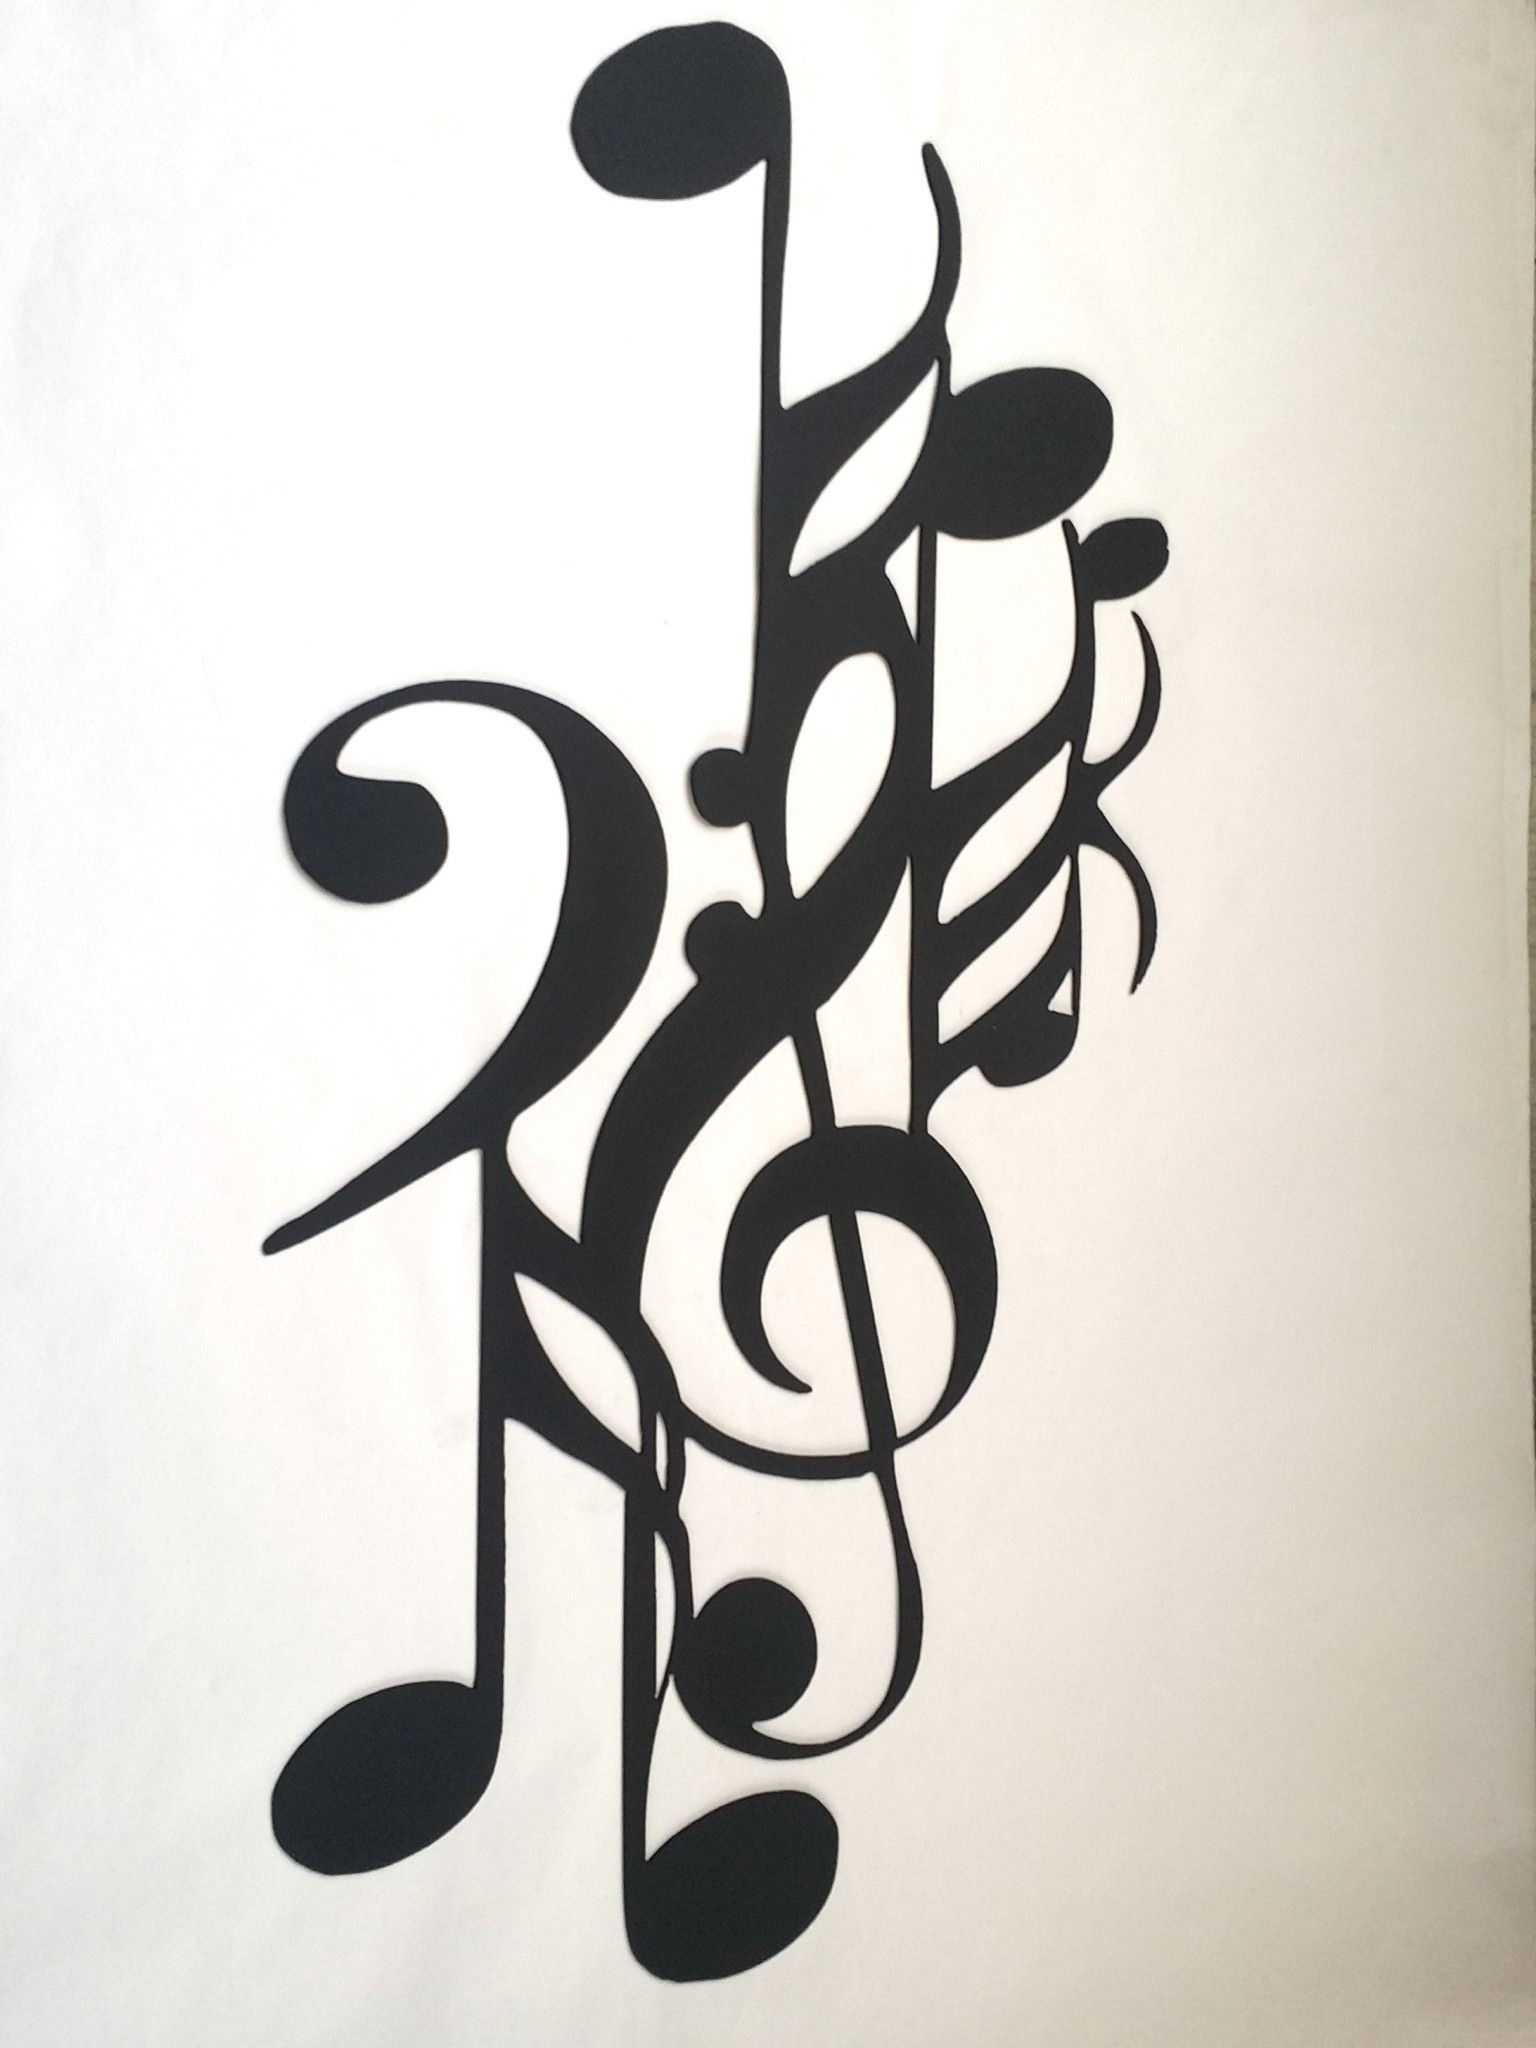 Music and notes art deco ft metal wall art home decor art deco